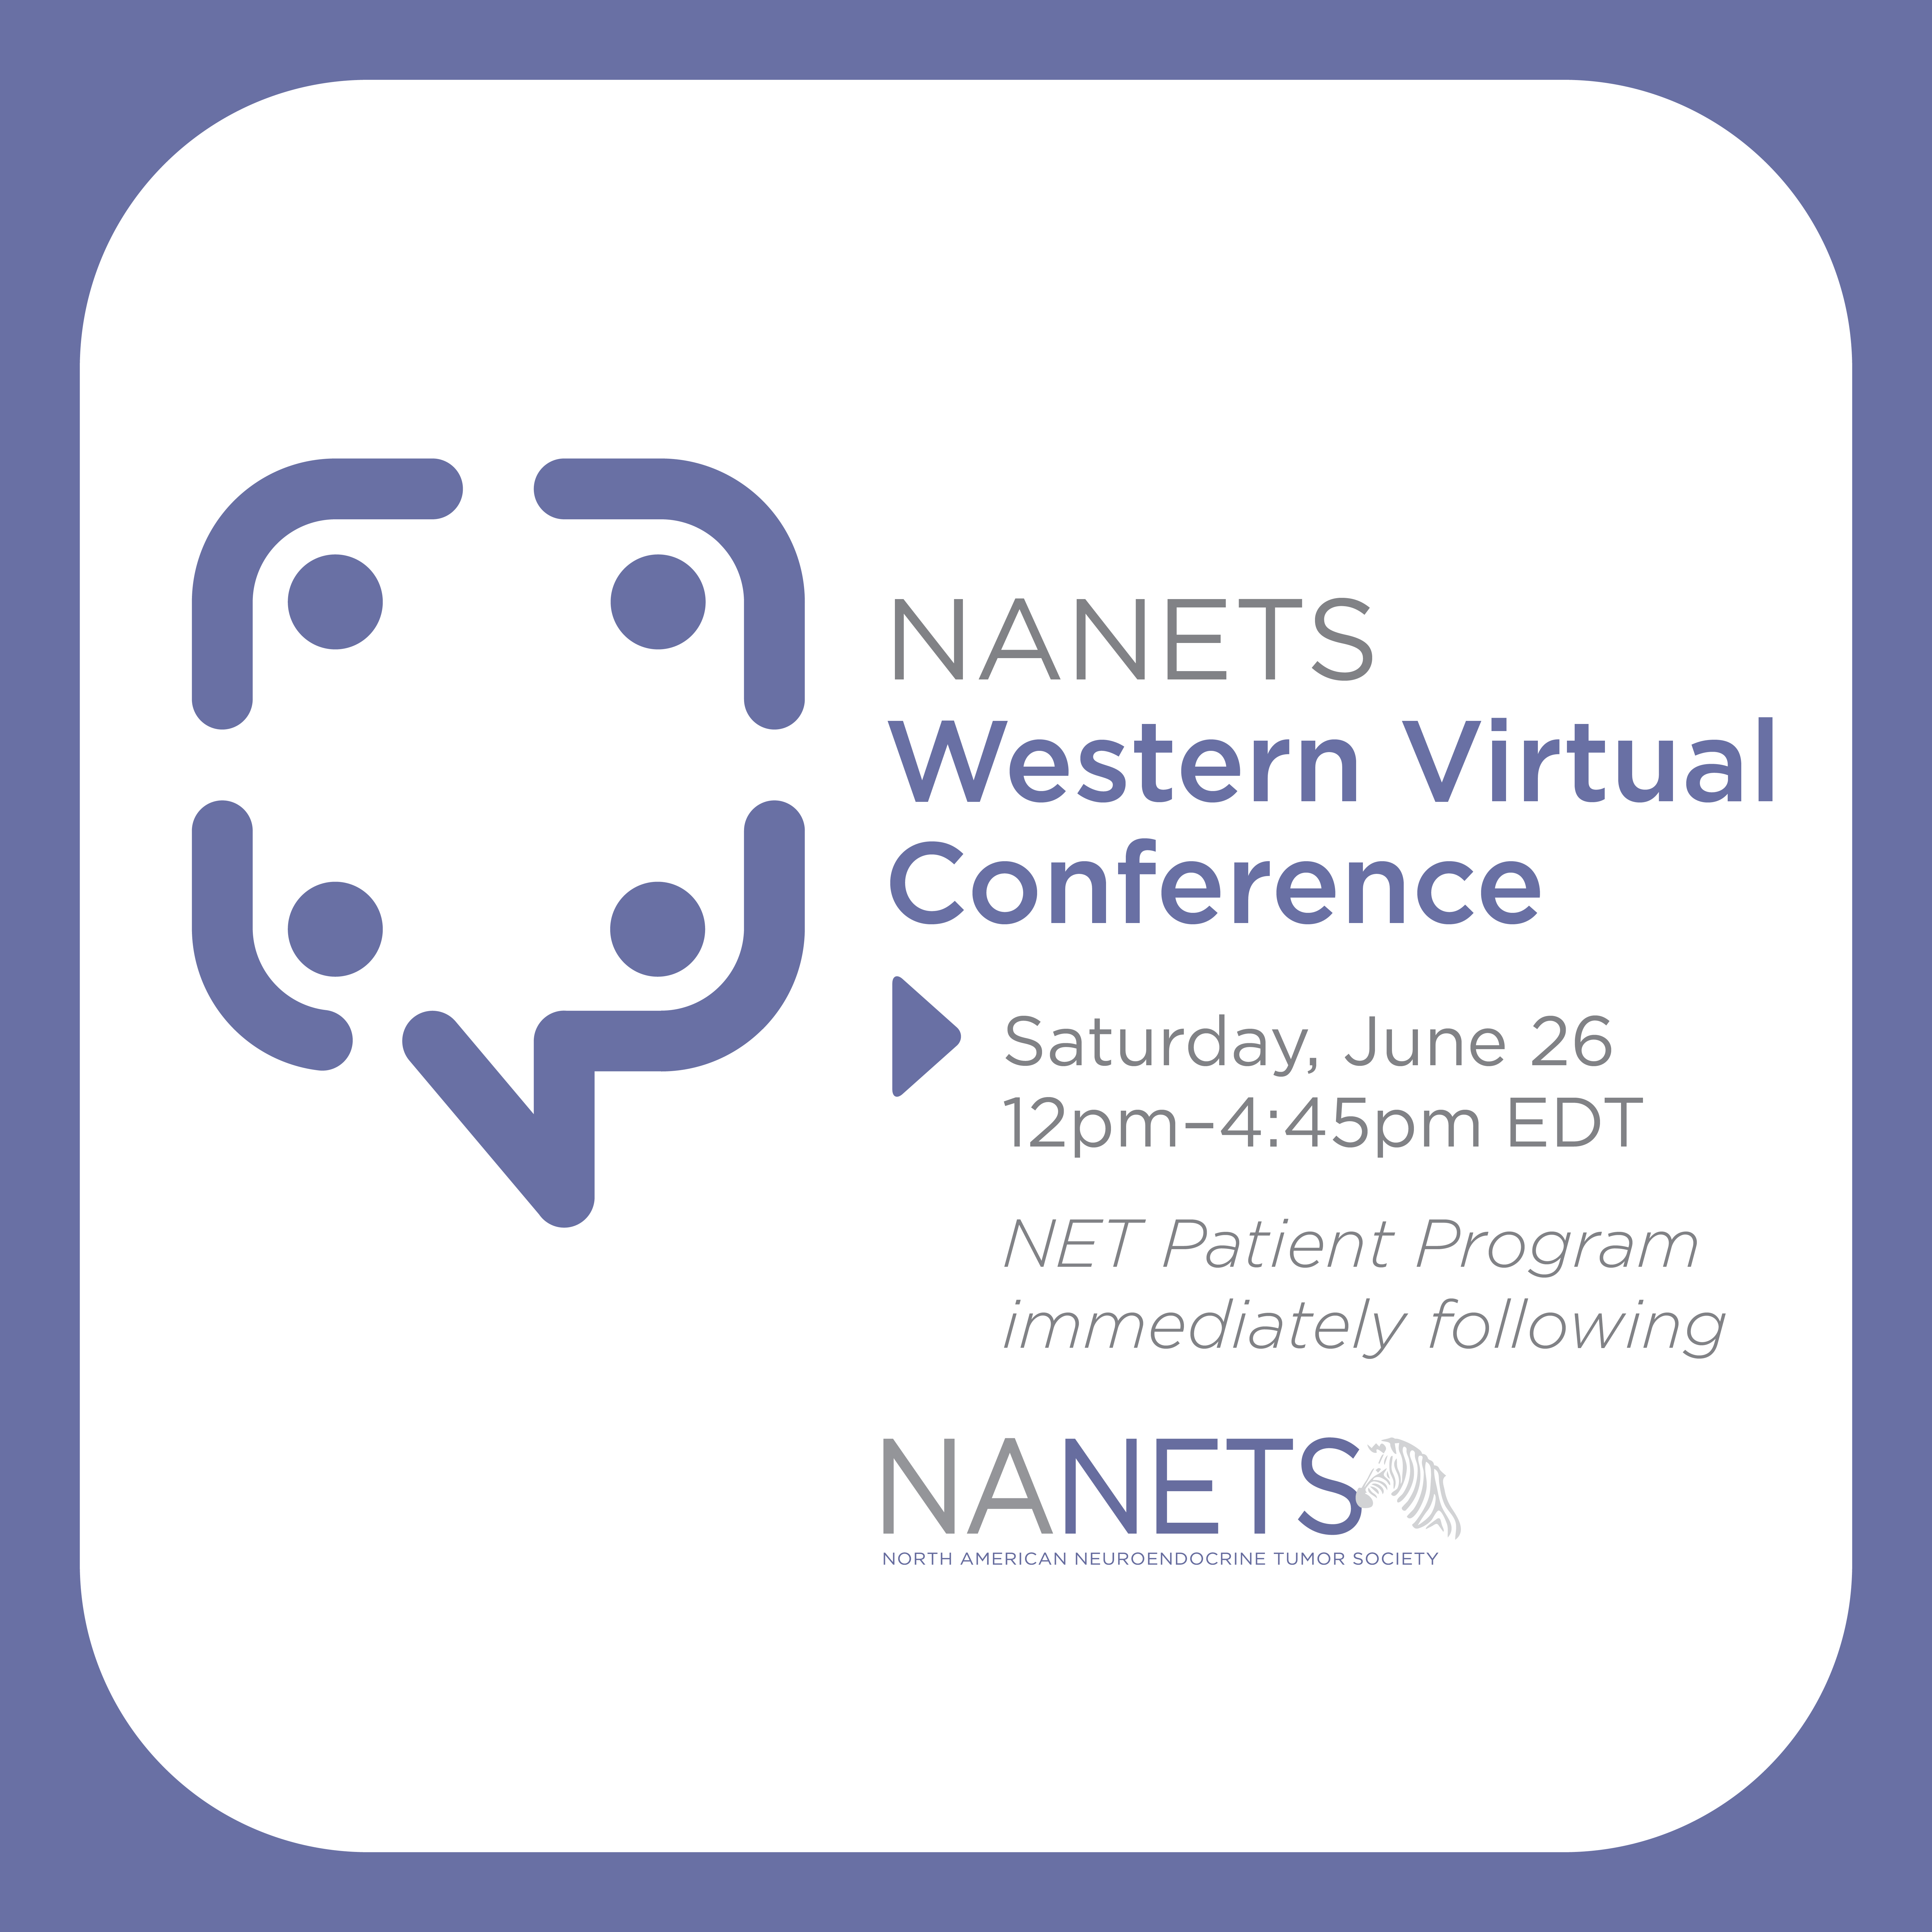 02 20318 NANETS 2021 East and West Virtual Regional Conference SOCIAL